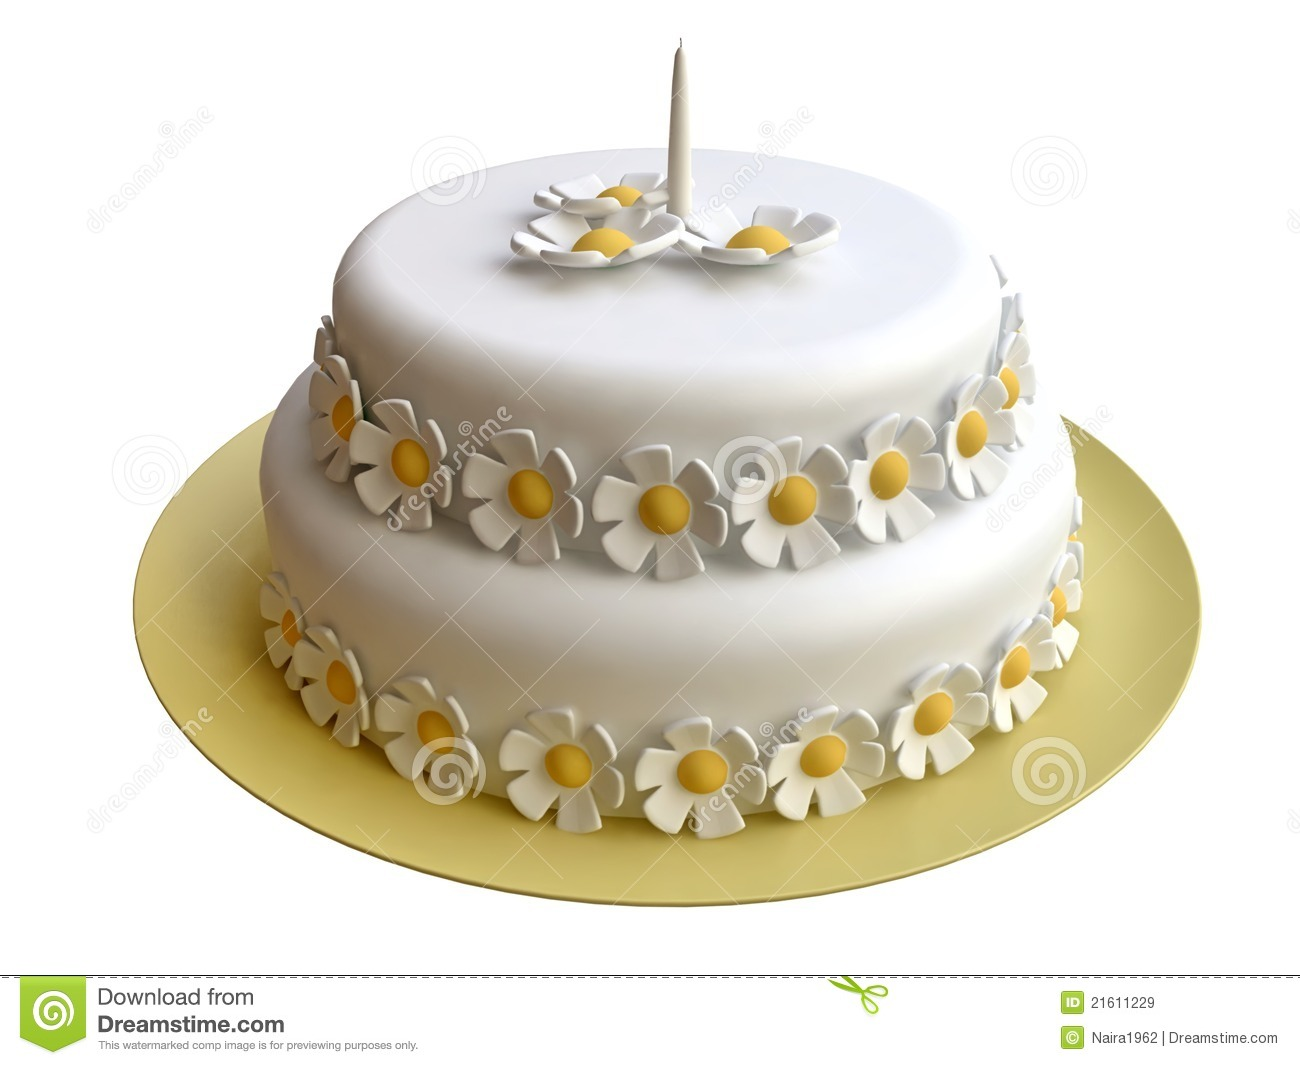 Flores De Aniversario: Birthday Cake Decorated With Marzipan Flowers Royalty Free